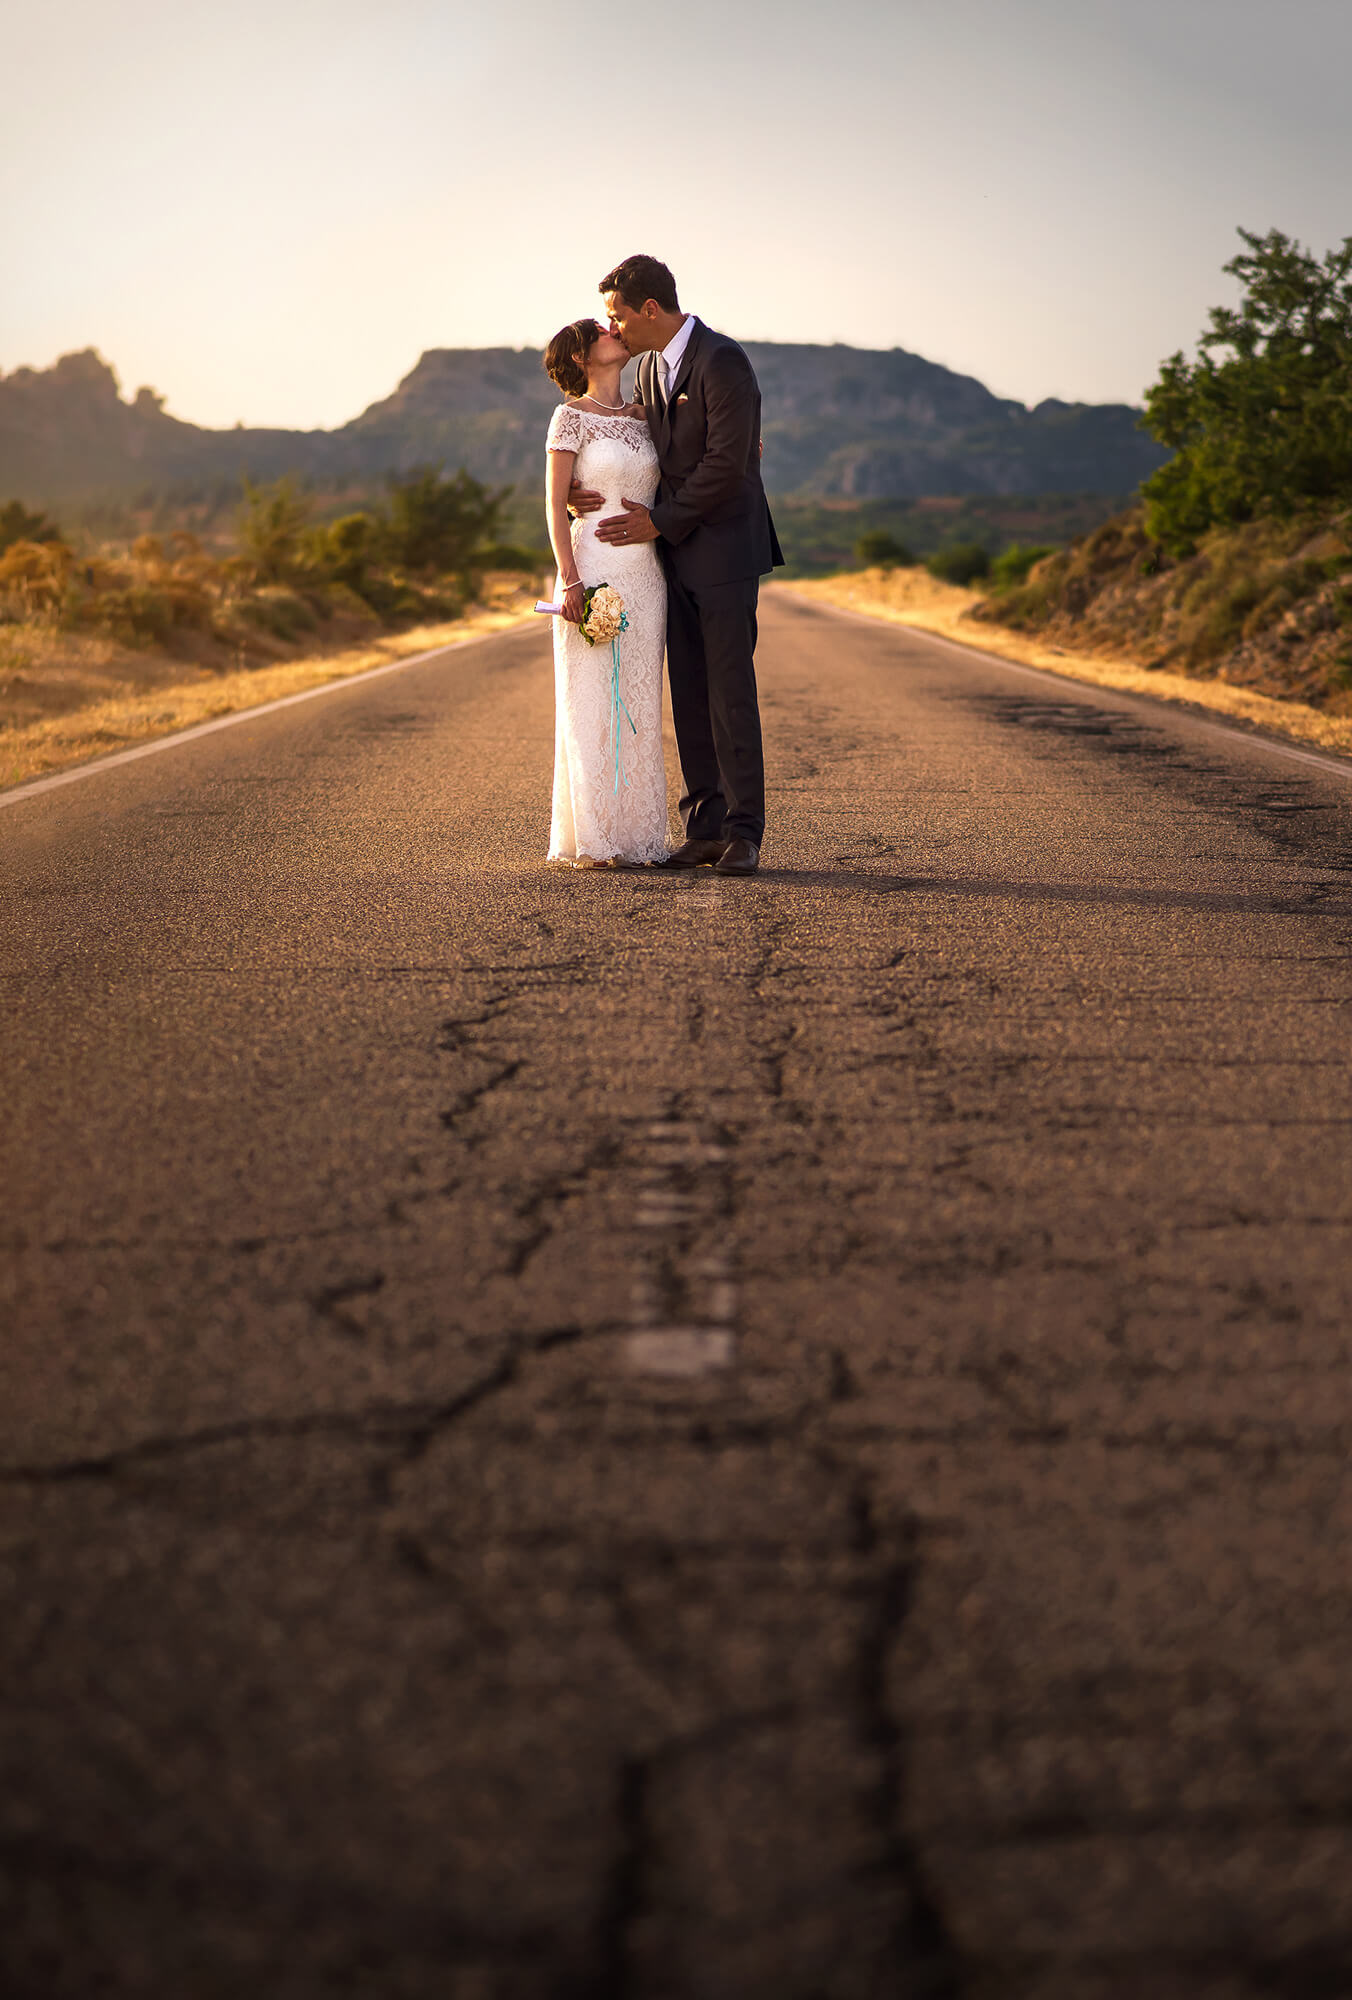 Proposal photographer in Sardinia